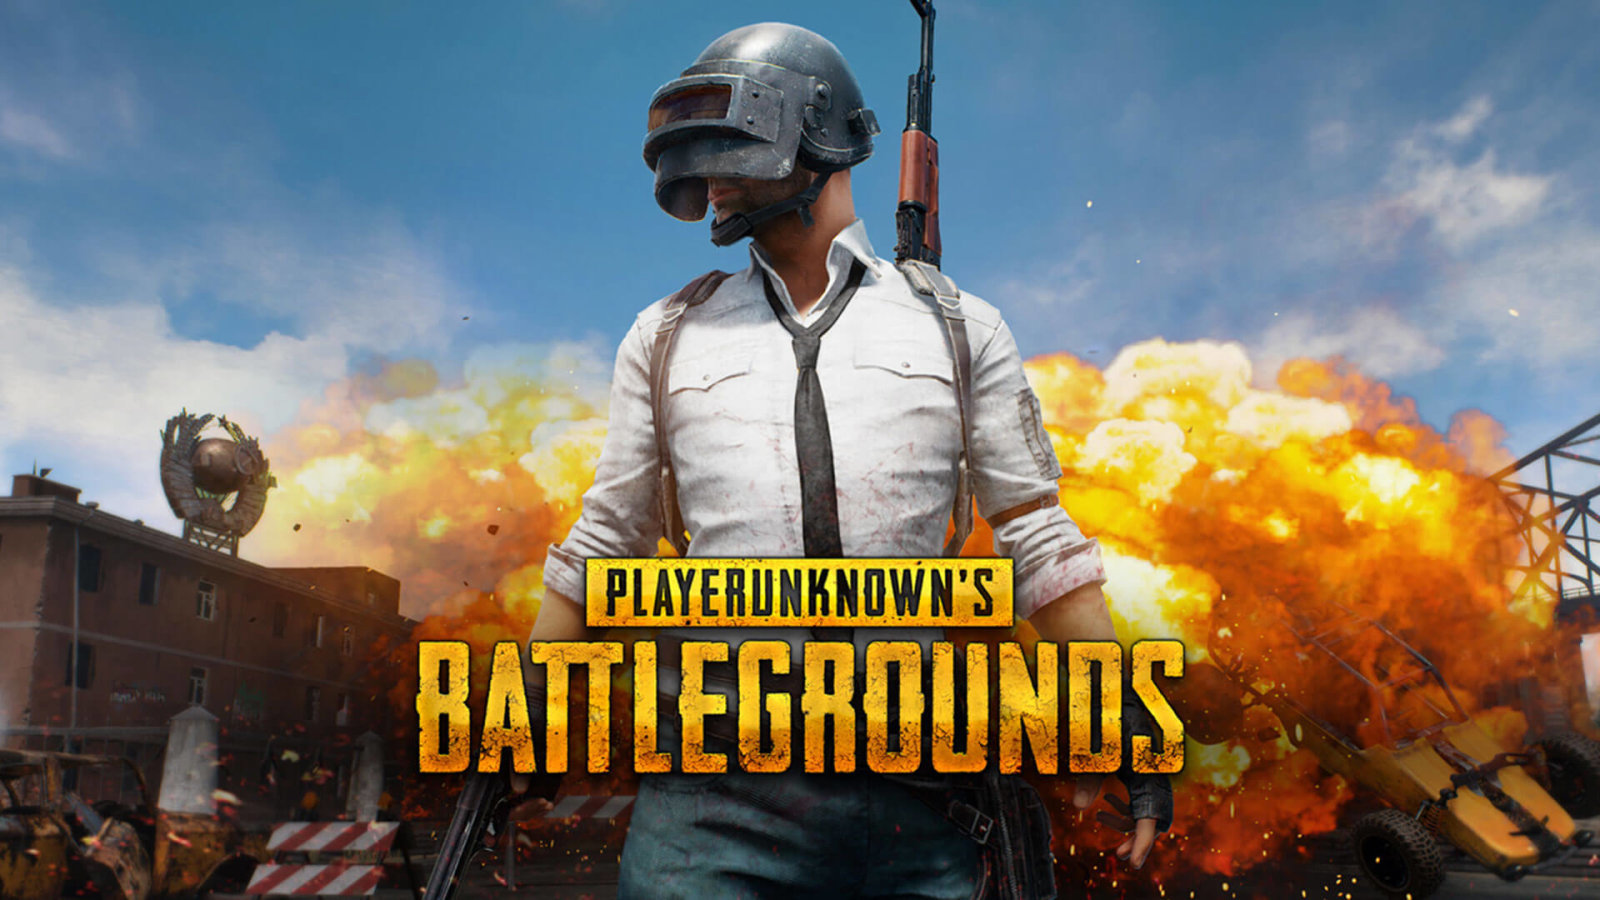 PUBG mobile update,PUBG mobile lite update,pubg mobile lite,new pubg update,latest pubg update,tech News,PUBG MOBILE,pubg lite server,pubg lite pre download,pubg lite new feature,PUBG Lite launch,pubg lite,download pubg lite